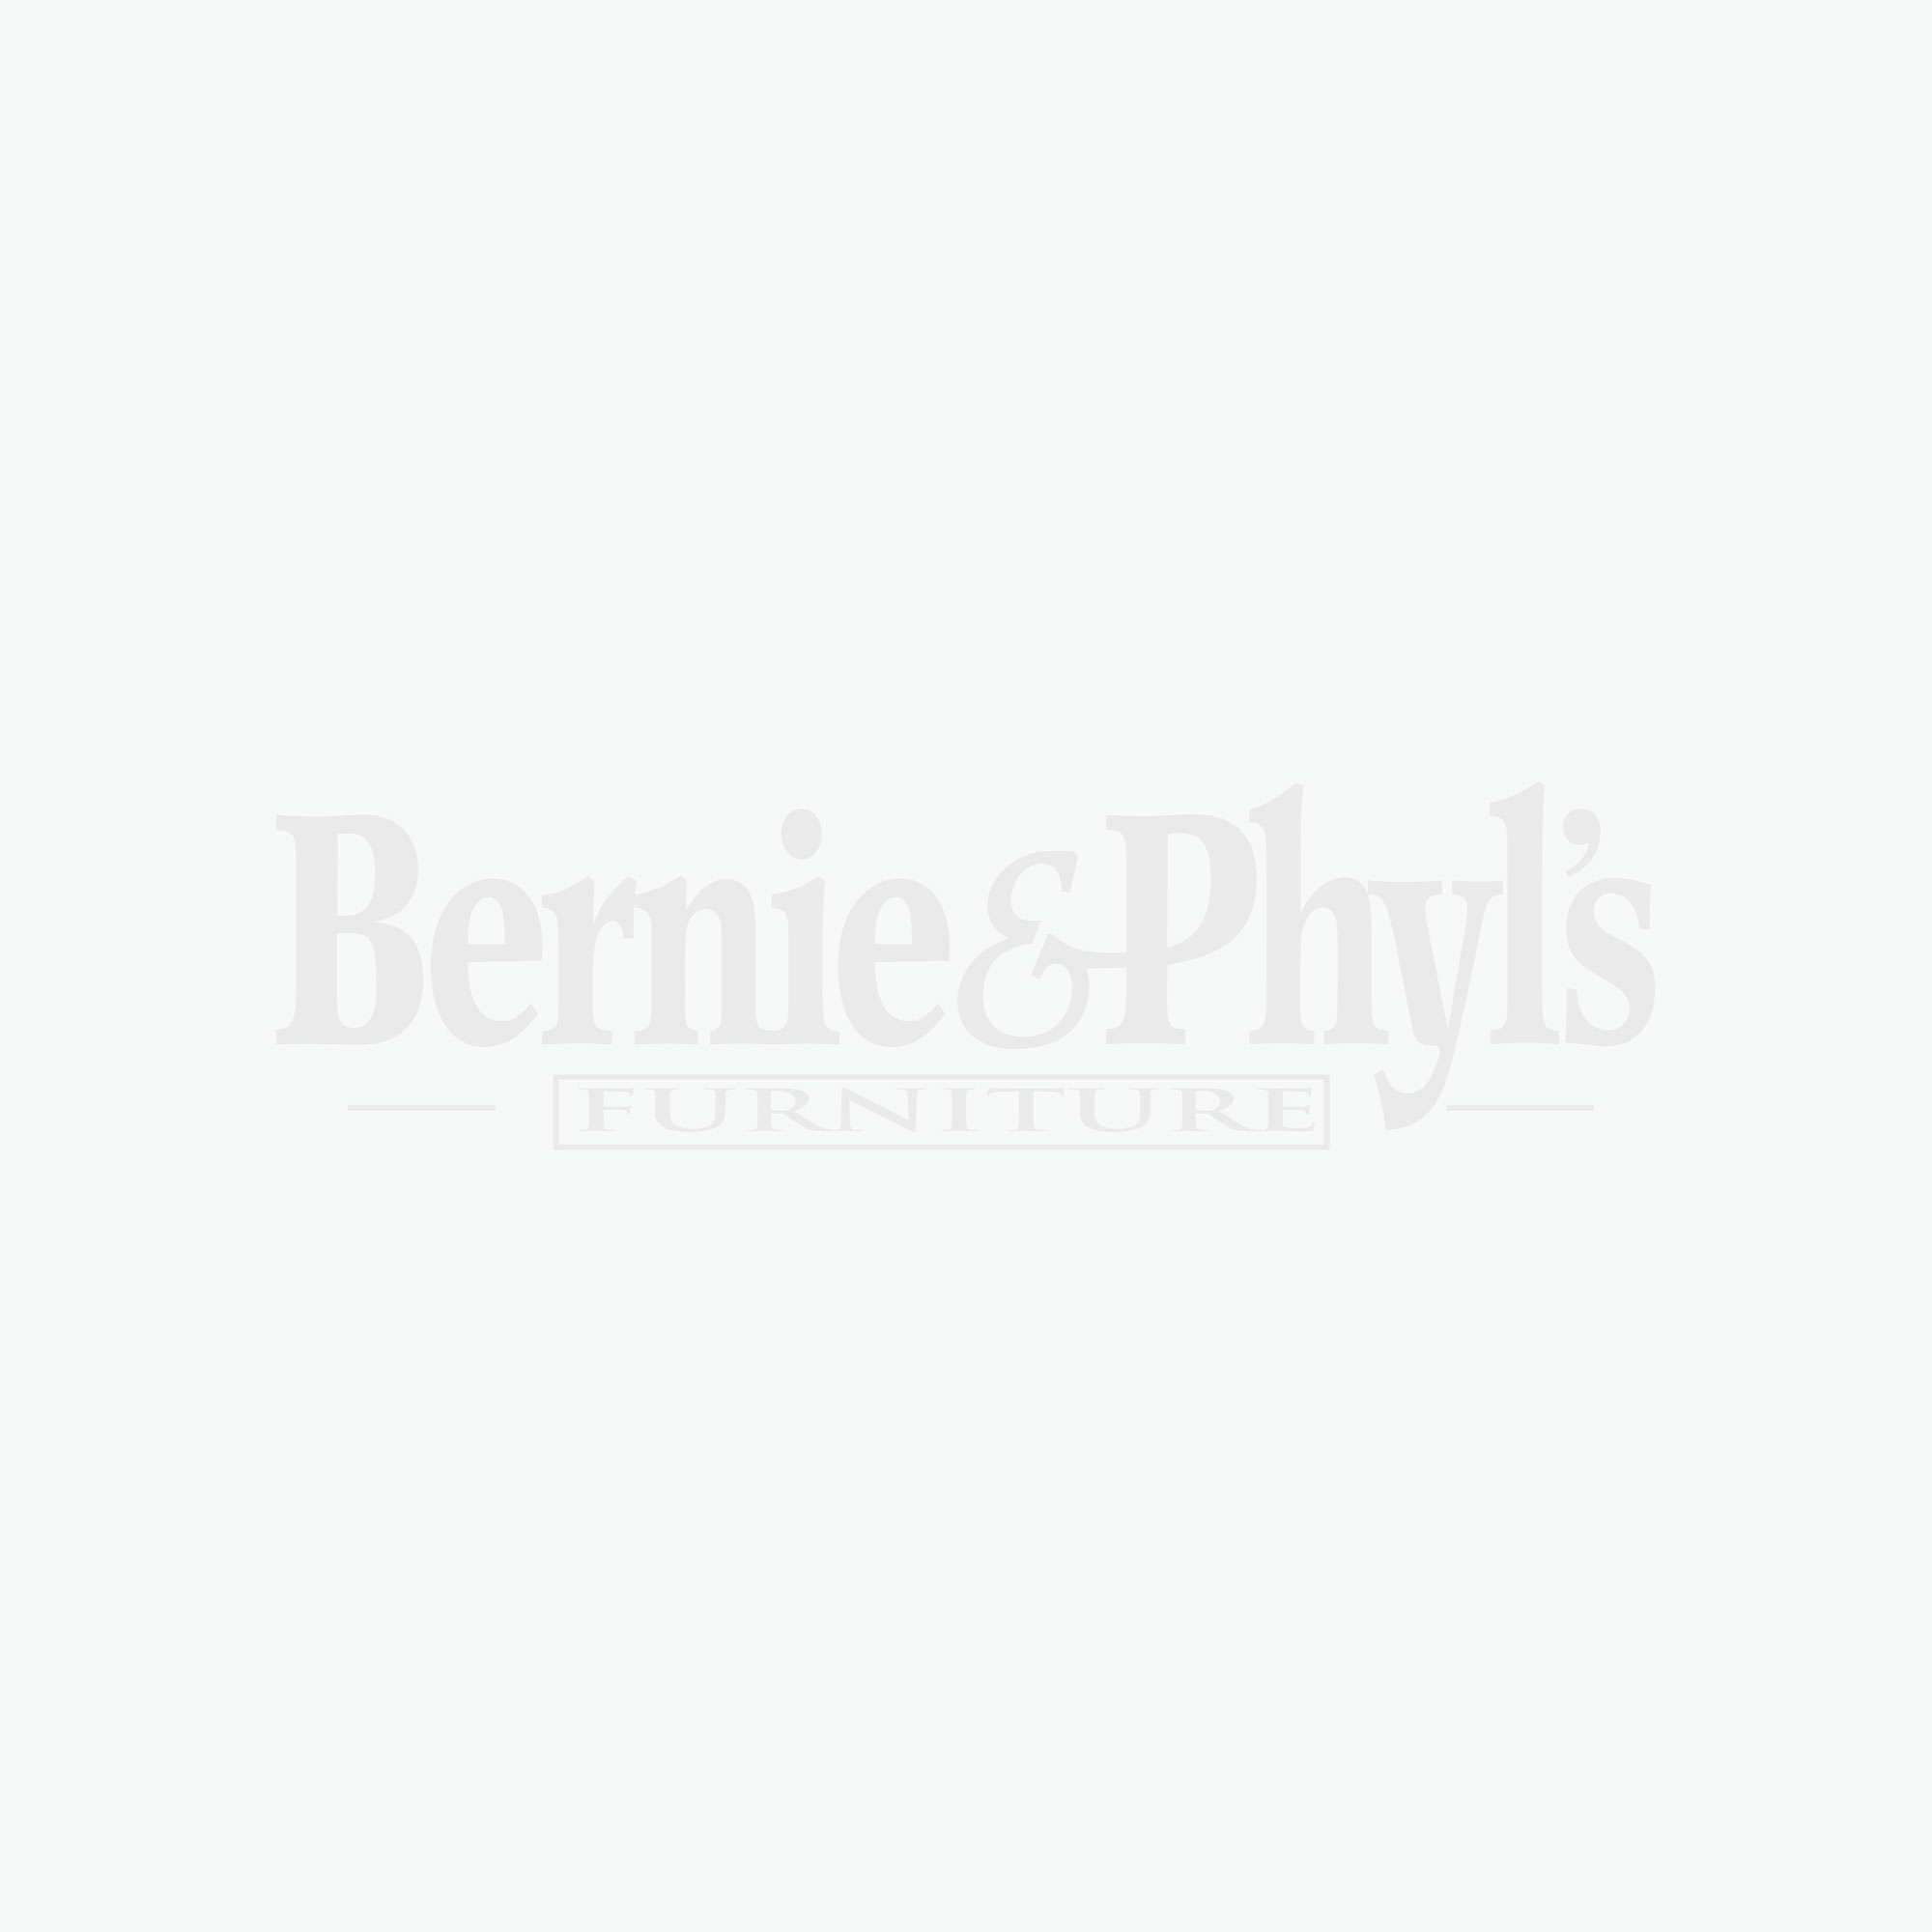 Kazler Sofa Bernie Phyl S Furniture